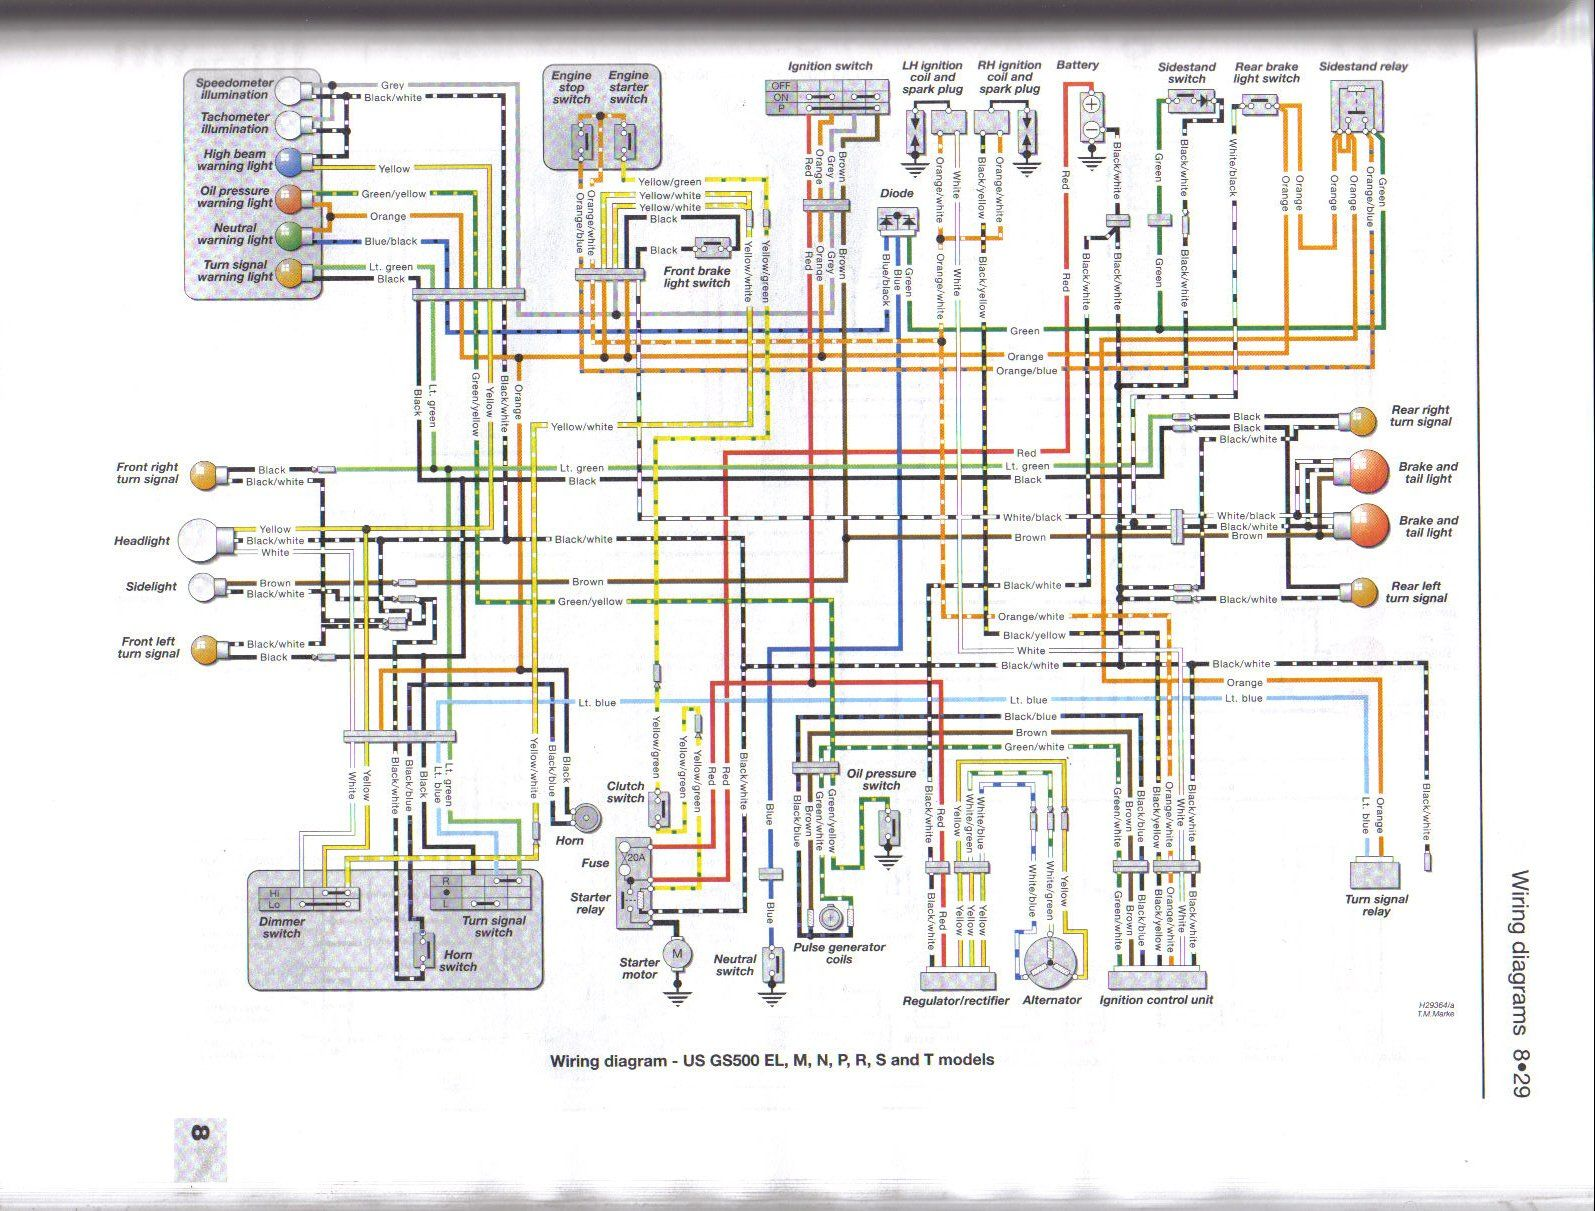 i liked this pic www suzukigs500 co uk suzuki gs500 pinterest rh pinterest com 1981 suzuki gs 450 wiring diagram Suzuki GS400 Wiring-Diagram